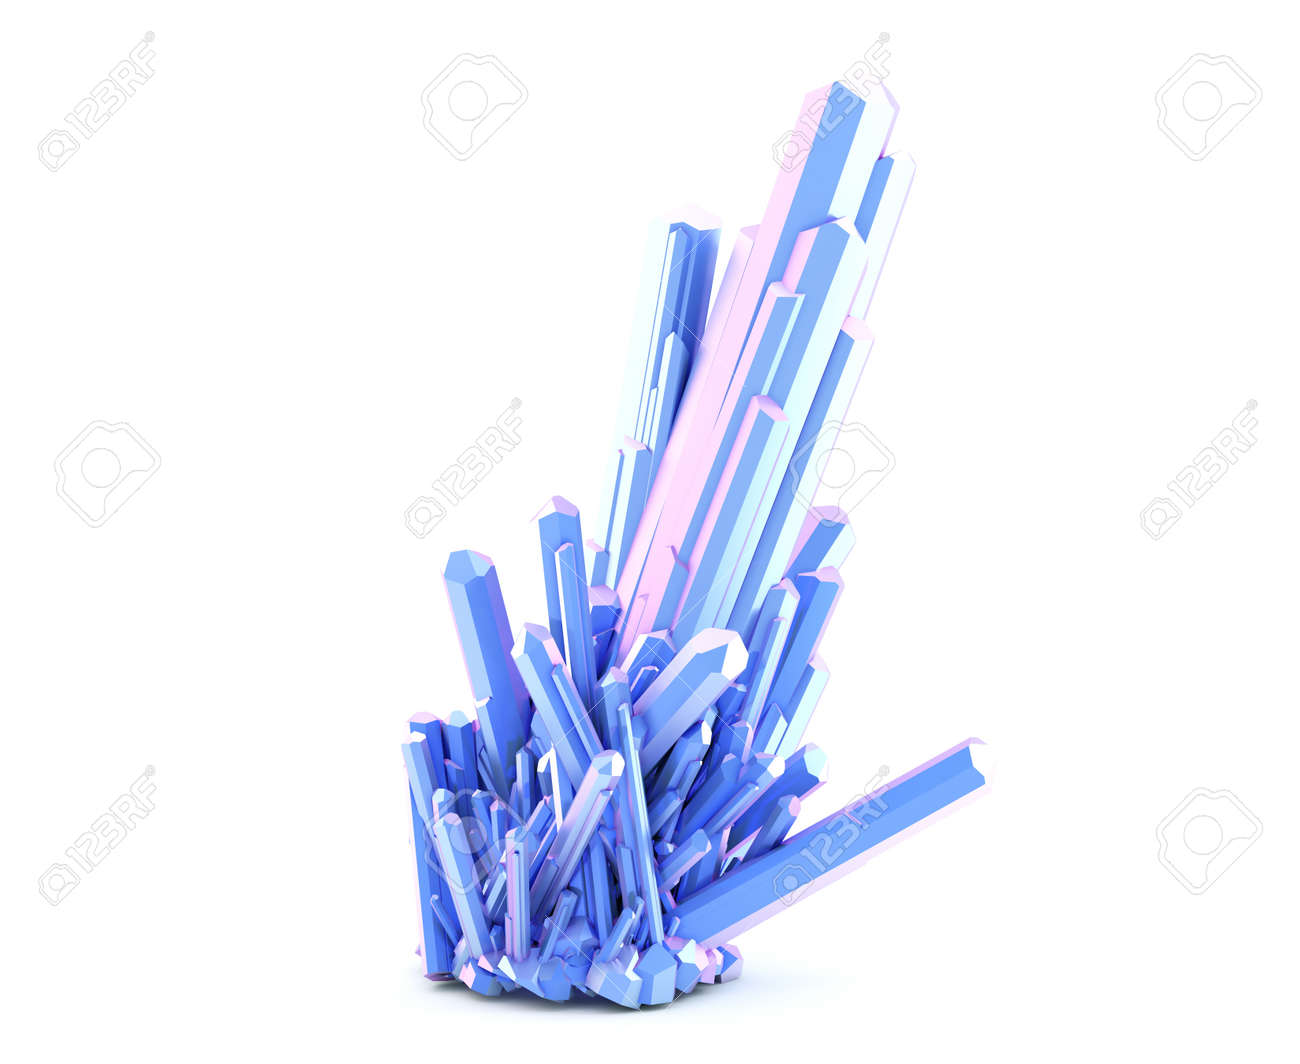 Blue color crystal cluster isolated on white background. 3D illustration - 157356862